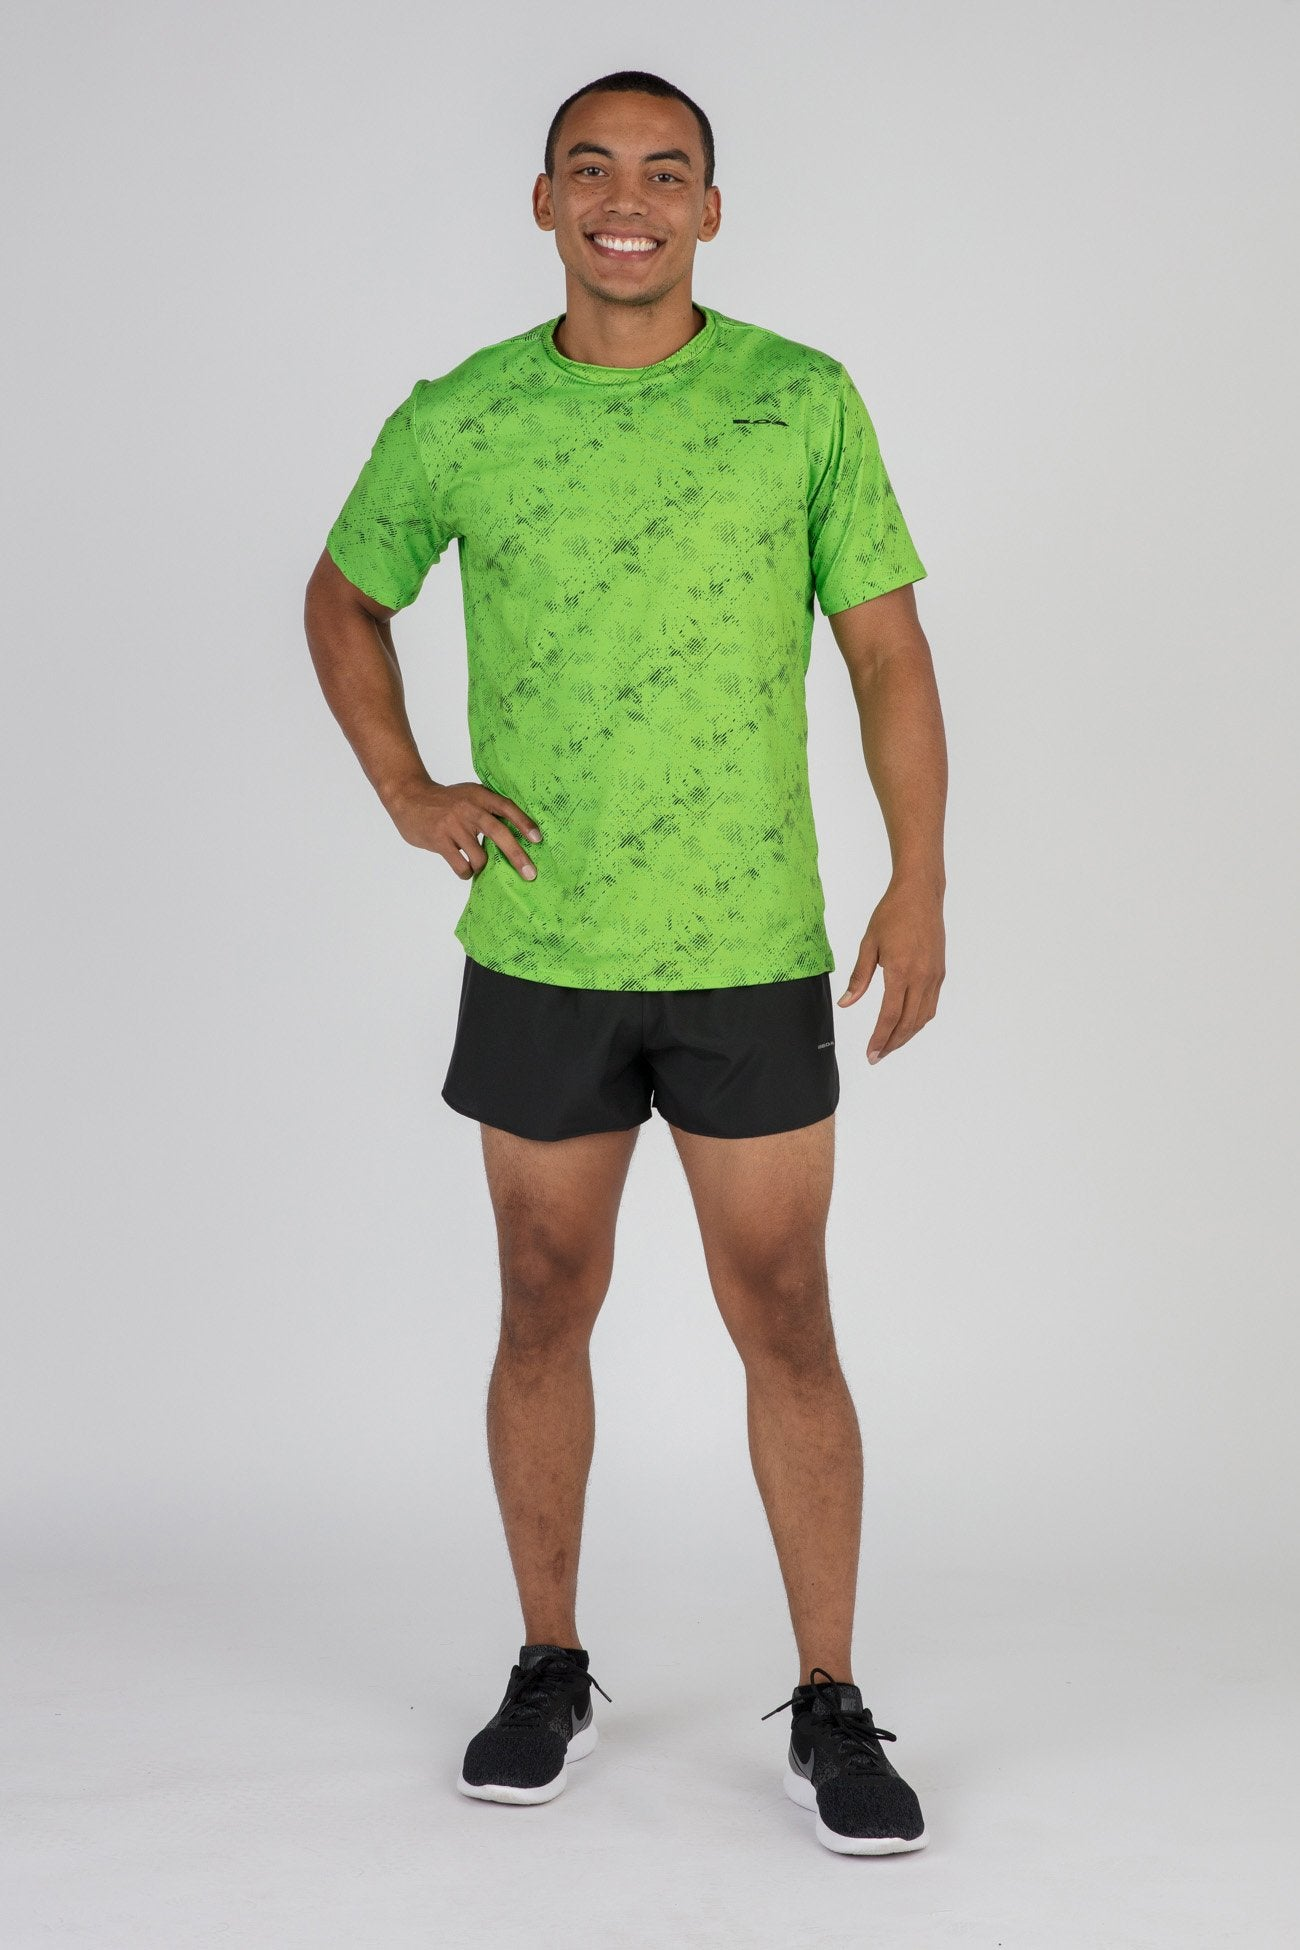 94777cac988 MEN S HYPERSOFT SHORT SLEEVE RUNNING SHIRT- ILLUSION LIME – BOA ...